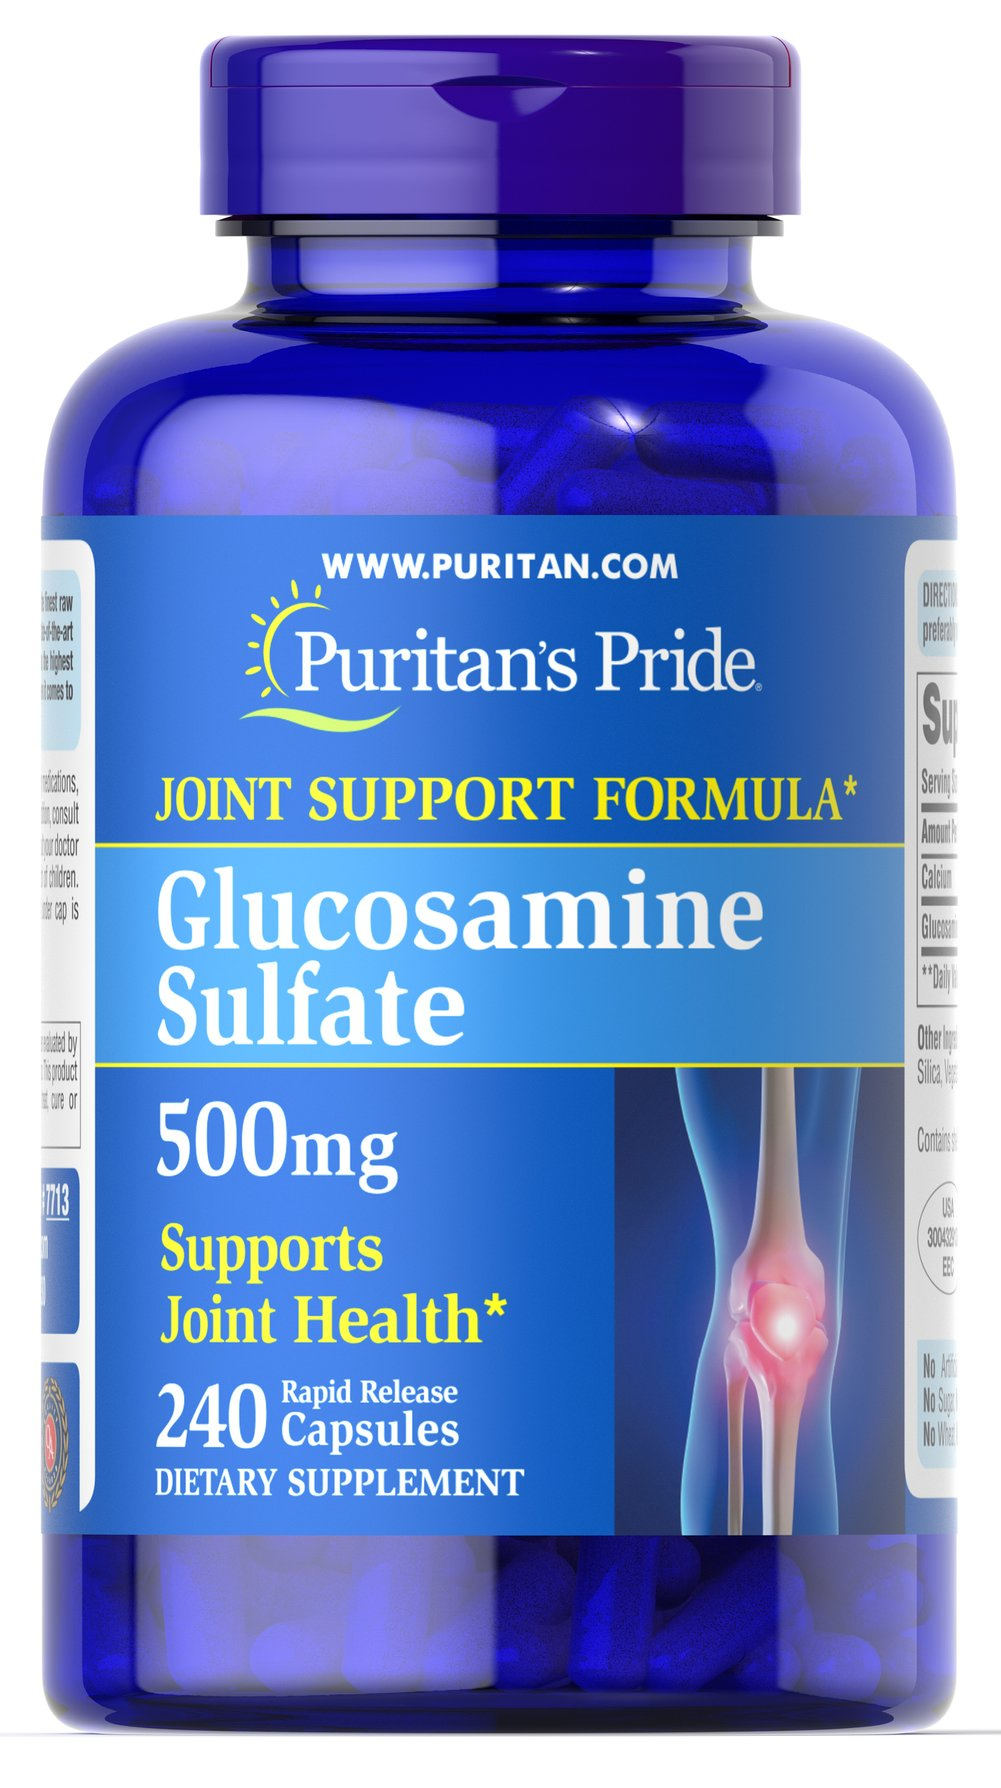 Glucosamine Sulfate 500 mg <p>Promotes Healthy Joints**</p><p>Supports Cartilage Maintenance**</p><p>As a key ingredient in cartilage, Glucosamine plays an important role in good joint health and helps promote healthy joints and cartilage maintenance.** Studies indicate that Glucosamine provides the building blocks of cartilage.** Our Glucosamine Sulfate capsules are perfect for anyone desiring extra nutritional support for cartilage and joints.**</p><p>